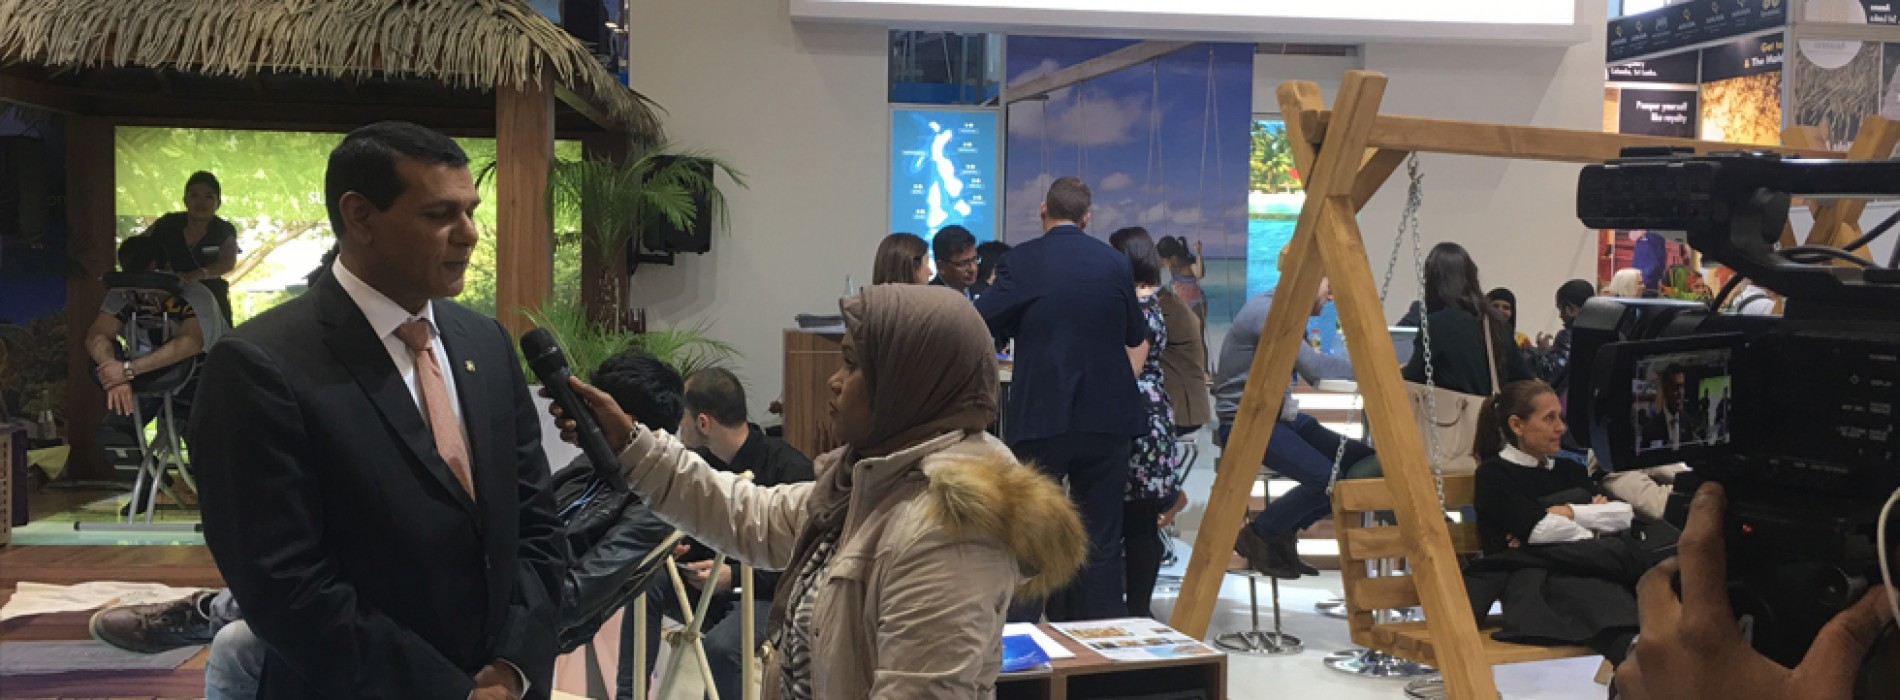 Maldives showcases destination experiences at the World's leading Travel trade show, ITB